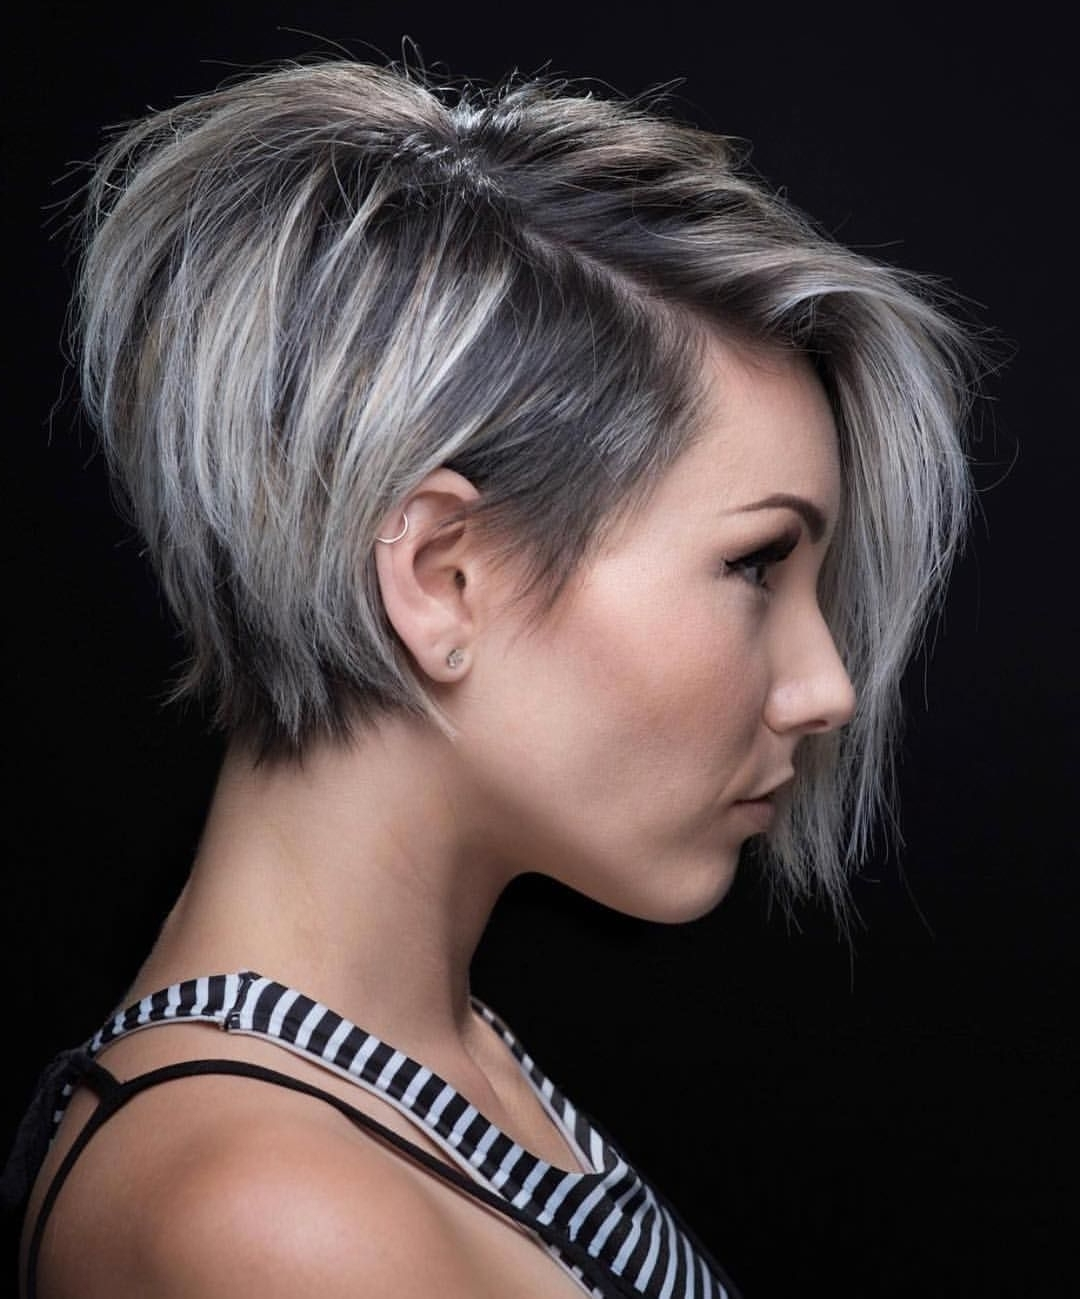 Fashionable Reverse Gray Ombre Pixie Hairstyles For Short Hair Regarding Whoa. This One Might Be A Game Changer (View 10 of 20)